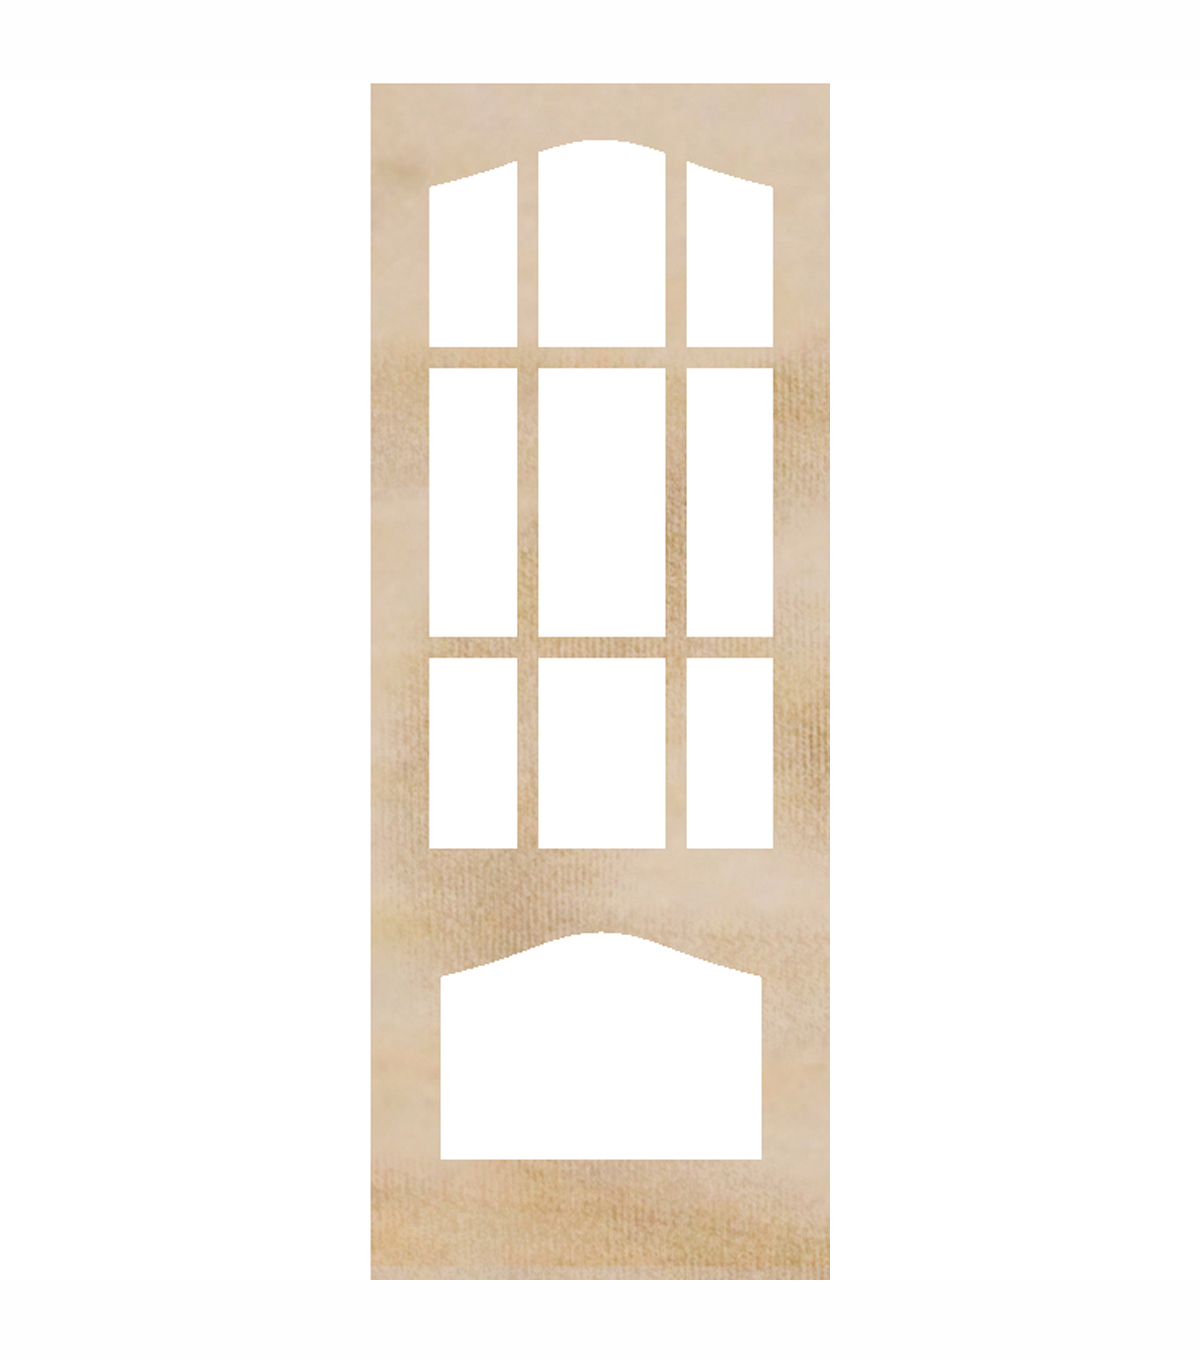 Kaisercraft Wood Flourishes Decorative Door Frames